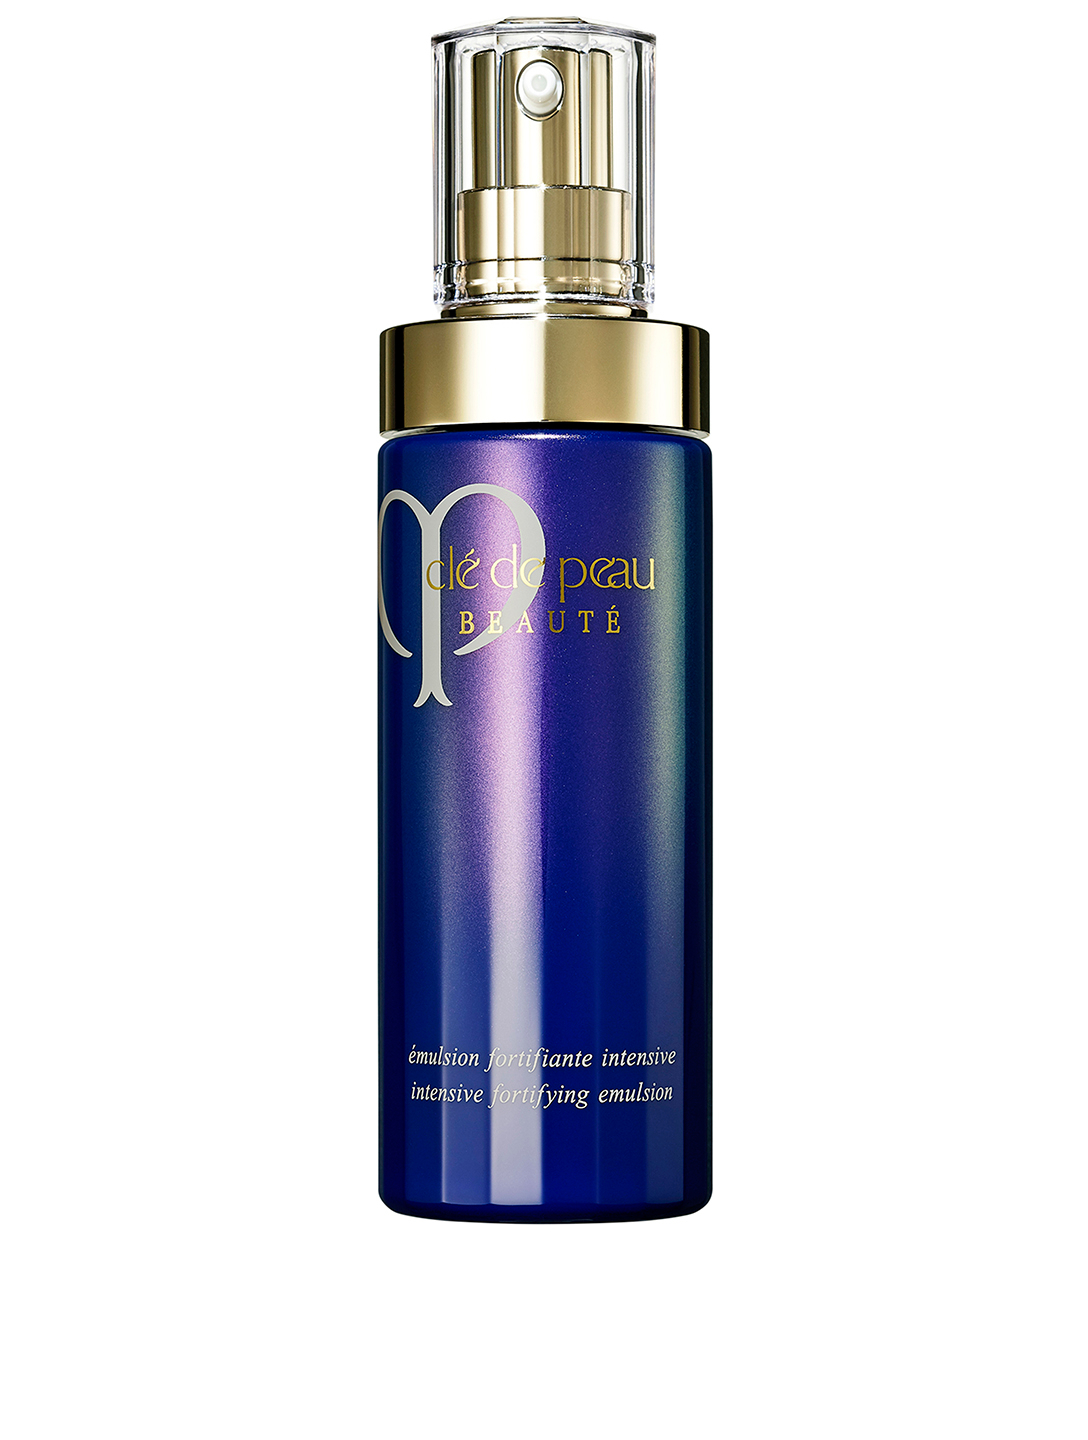 CLÉ DE PEAU BEAUTÉ Intensive Fortifying Emulsion Beauty